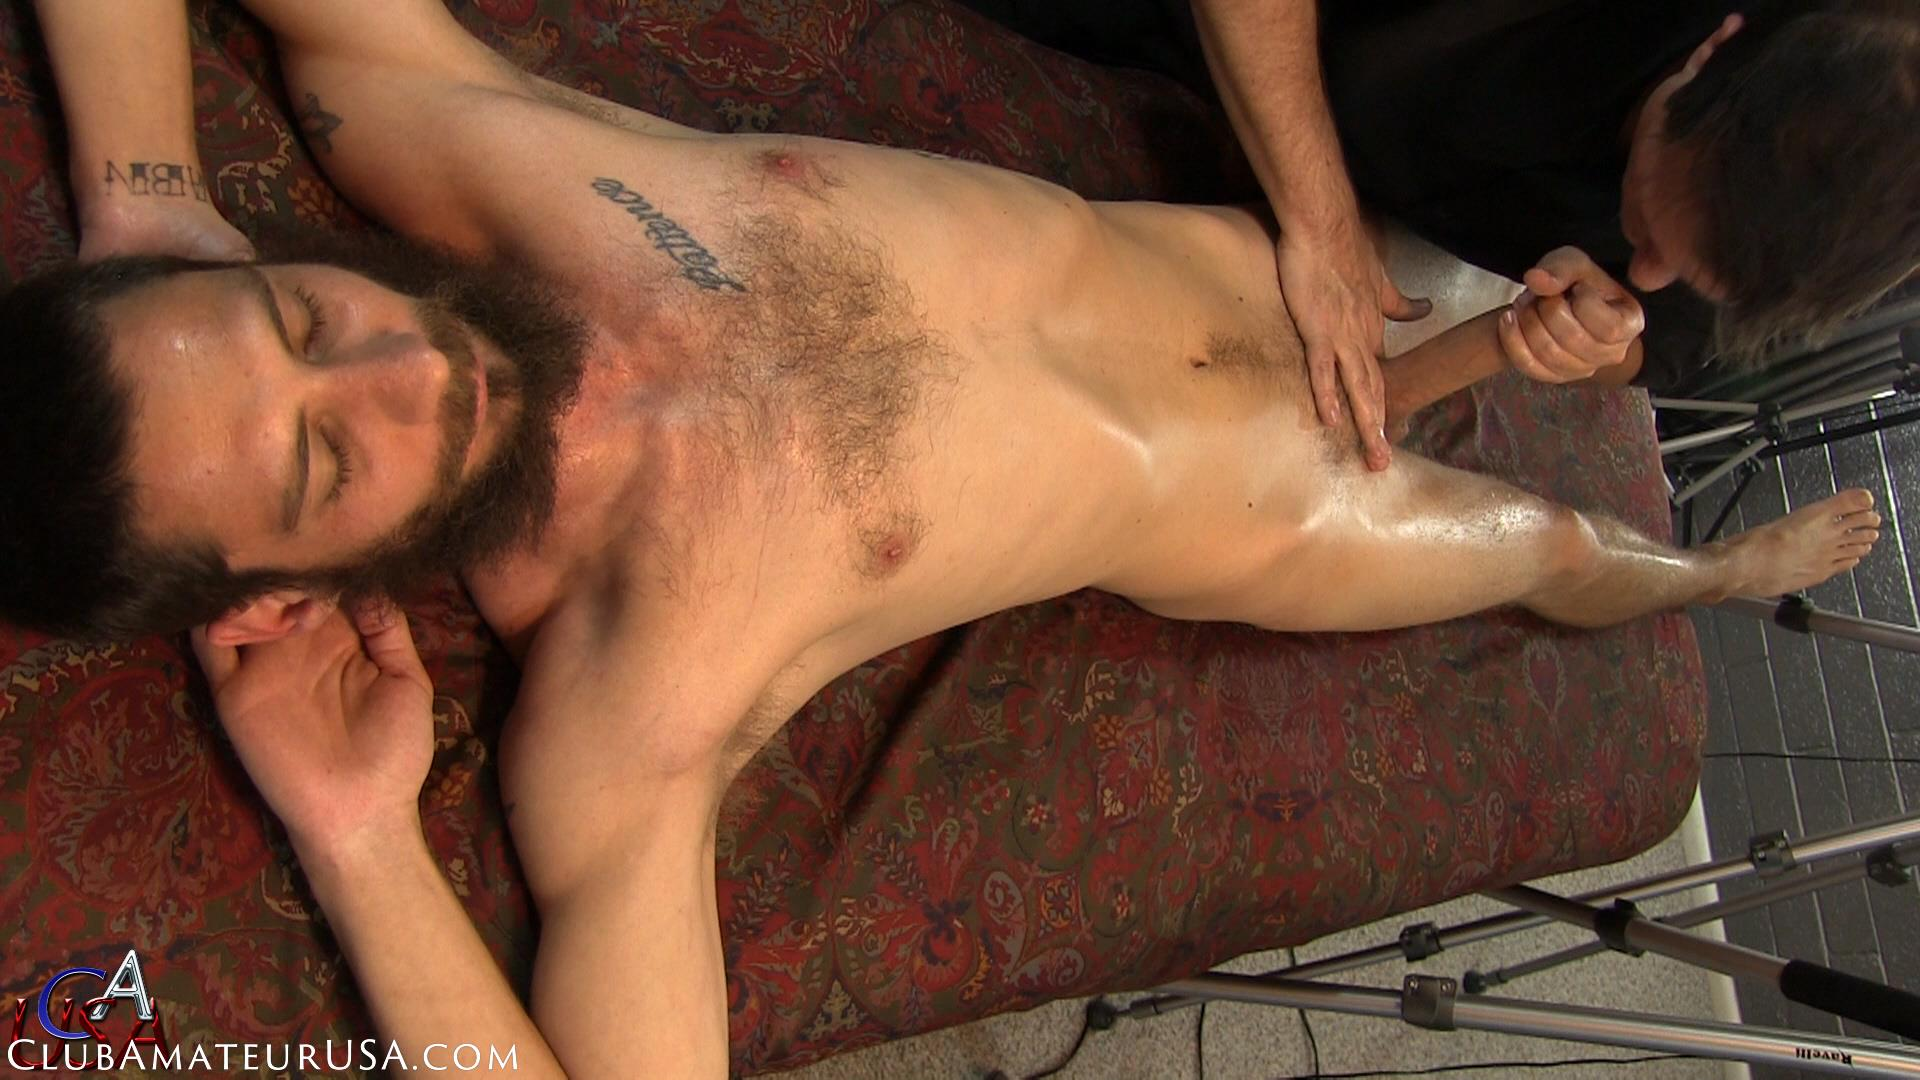 Gay porn in usa